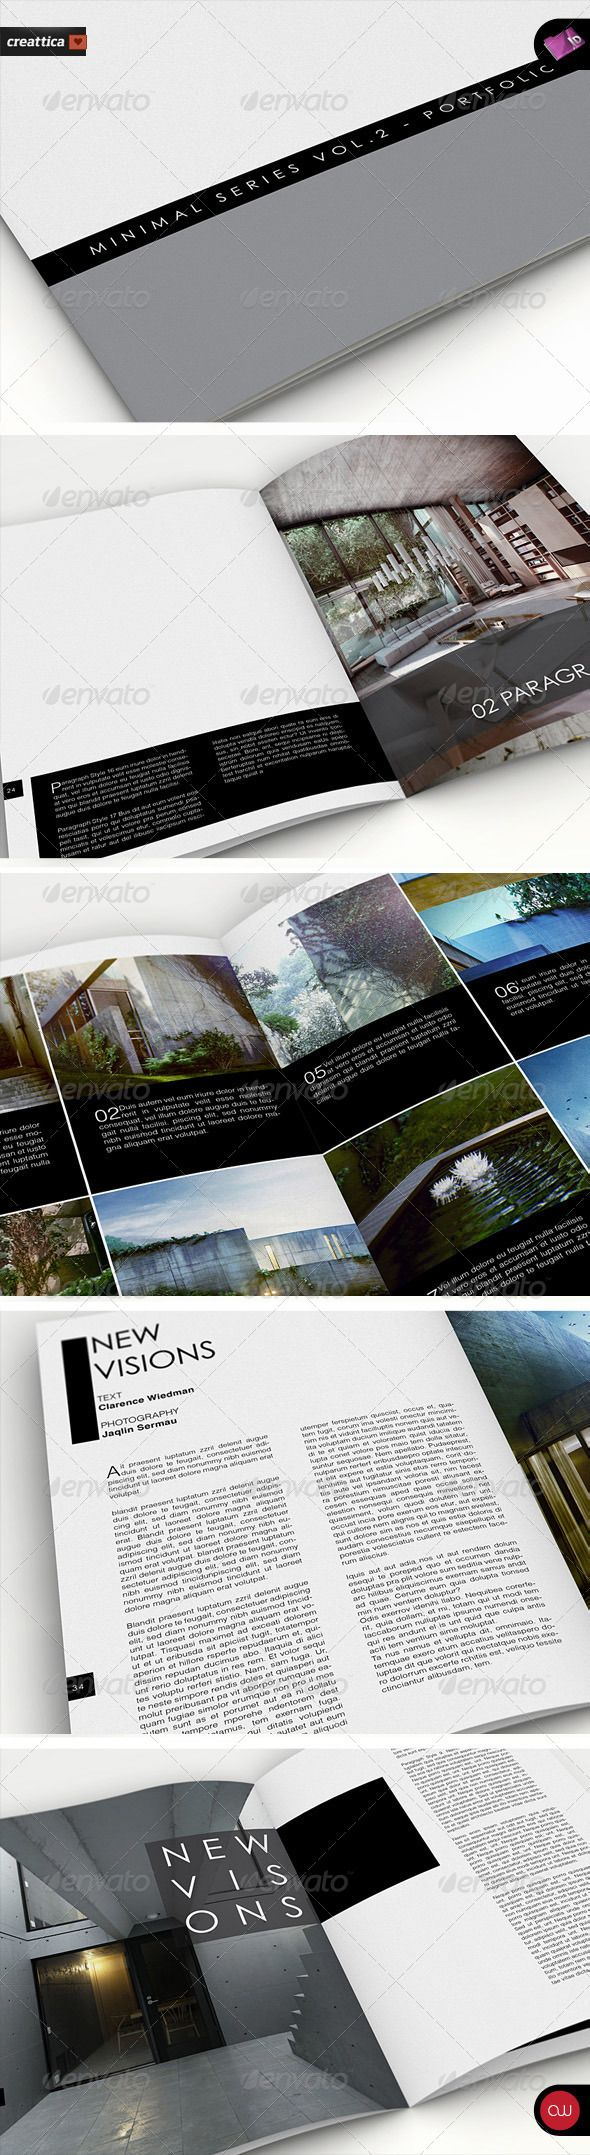 portfolio book vol 2 a4 indesign template by anderworks.html